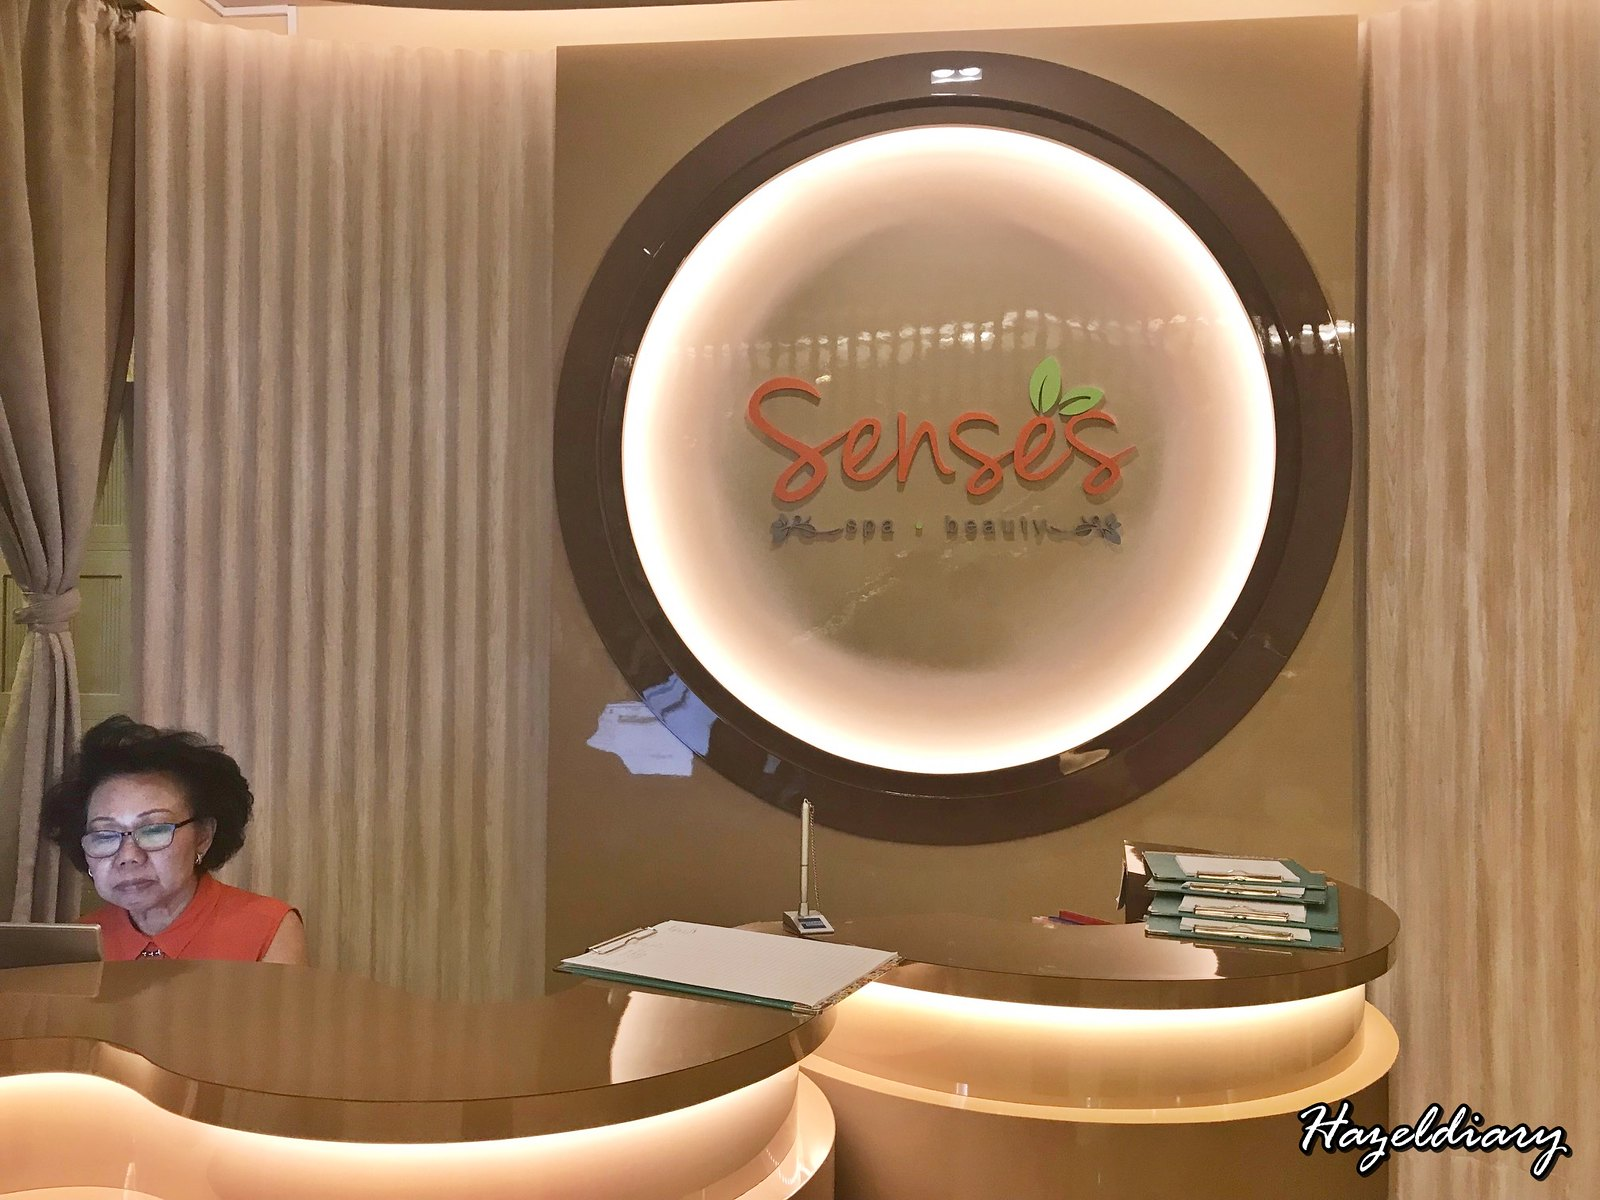 Senses Spa The Cathay-Hazeldiary-1